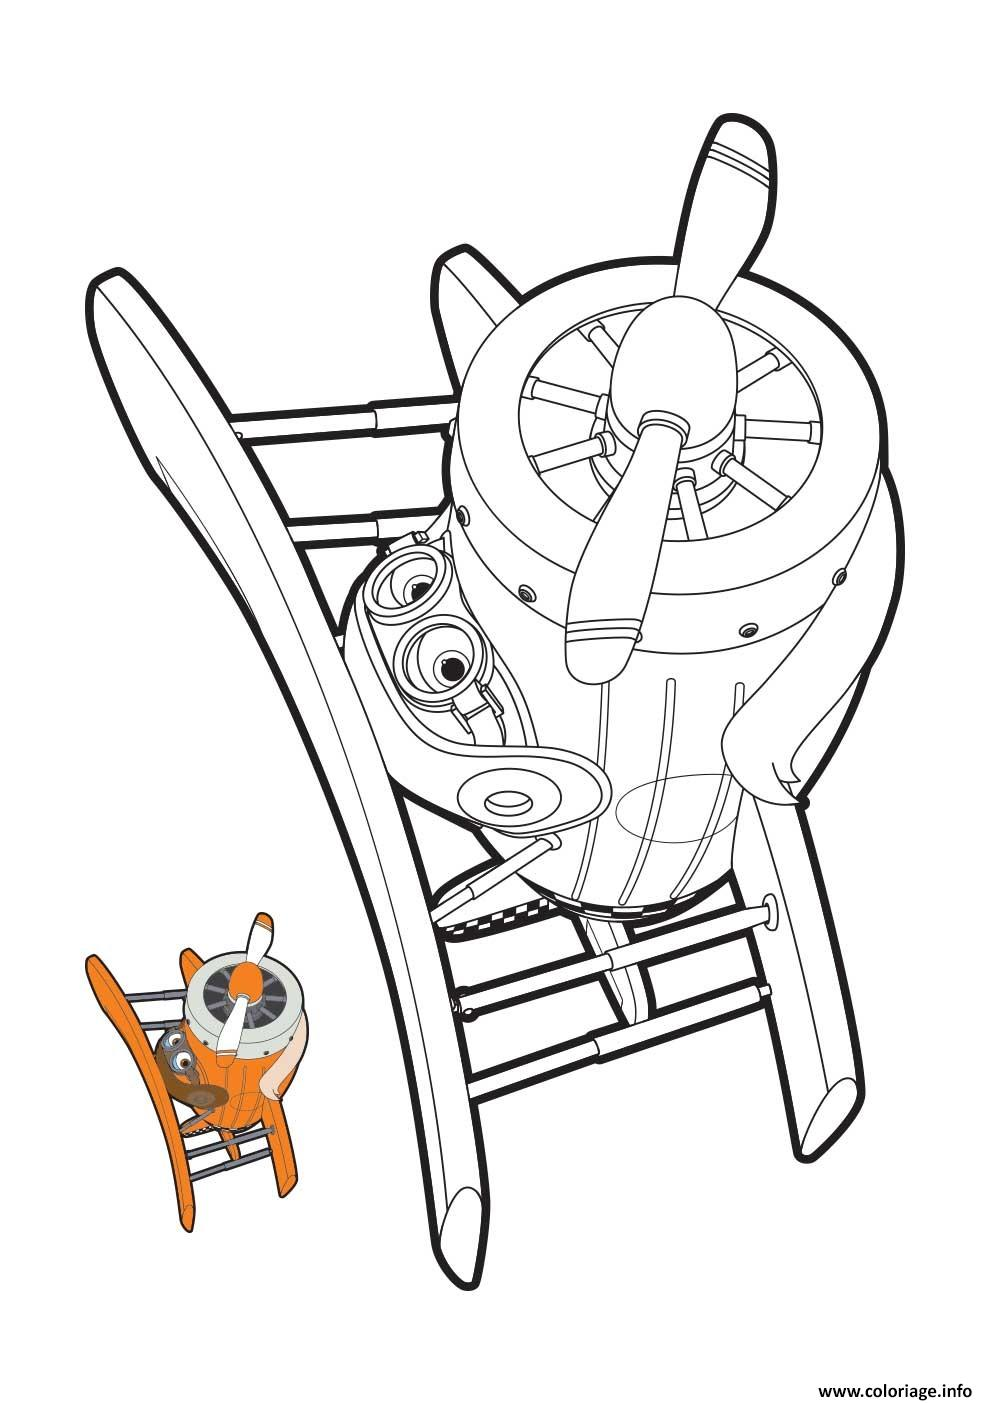 Coloriage Super Wings Grand Albert Mode Avion Dessin à Imprimer